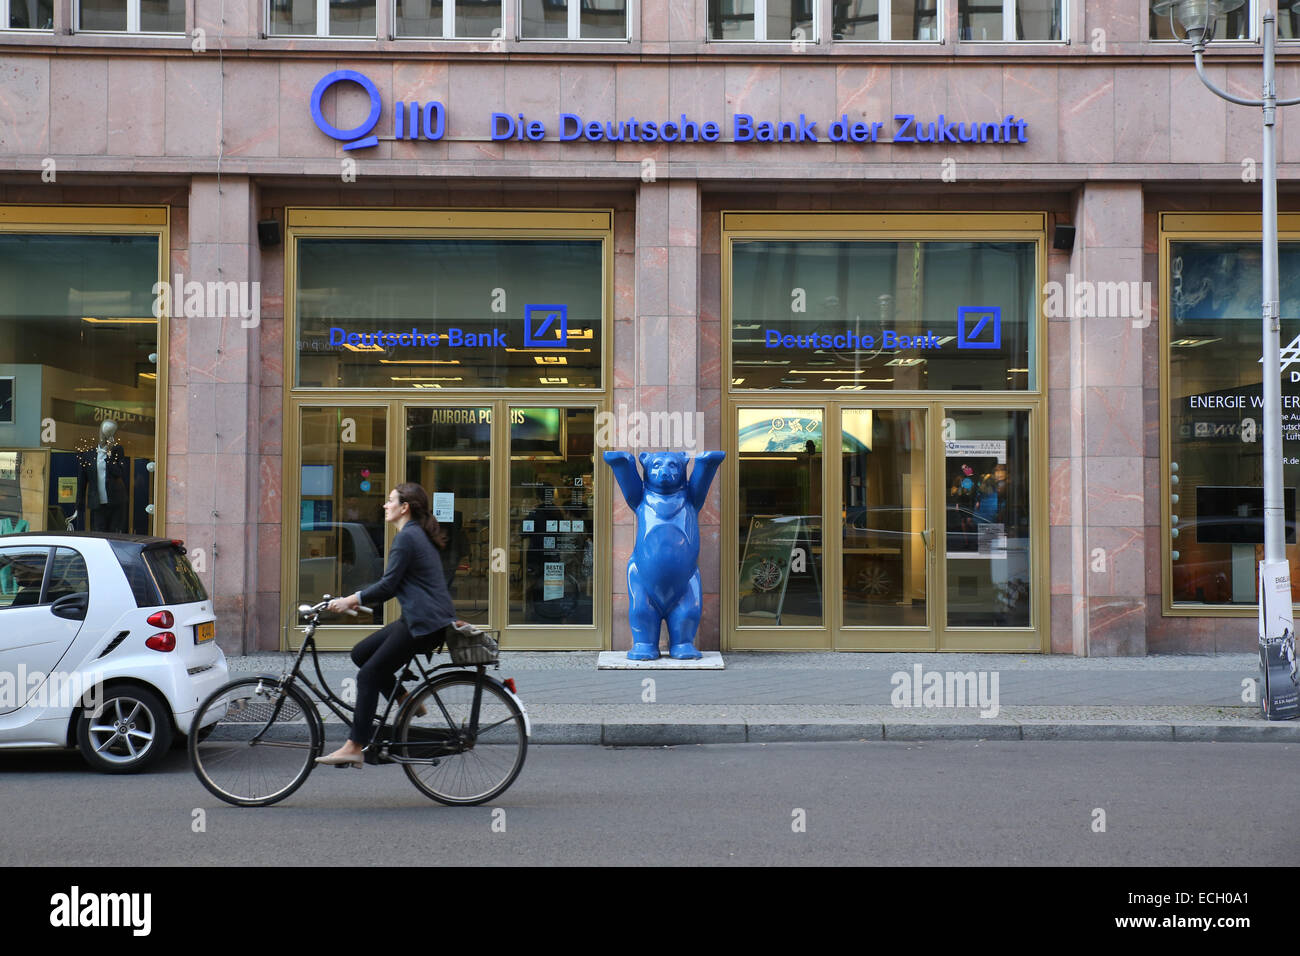 Berlin Bear High Resolution Stock Photography And Images Alamy